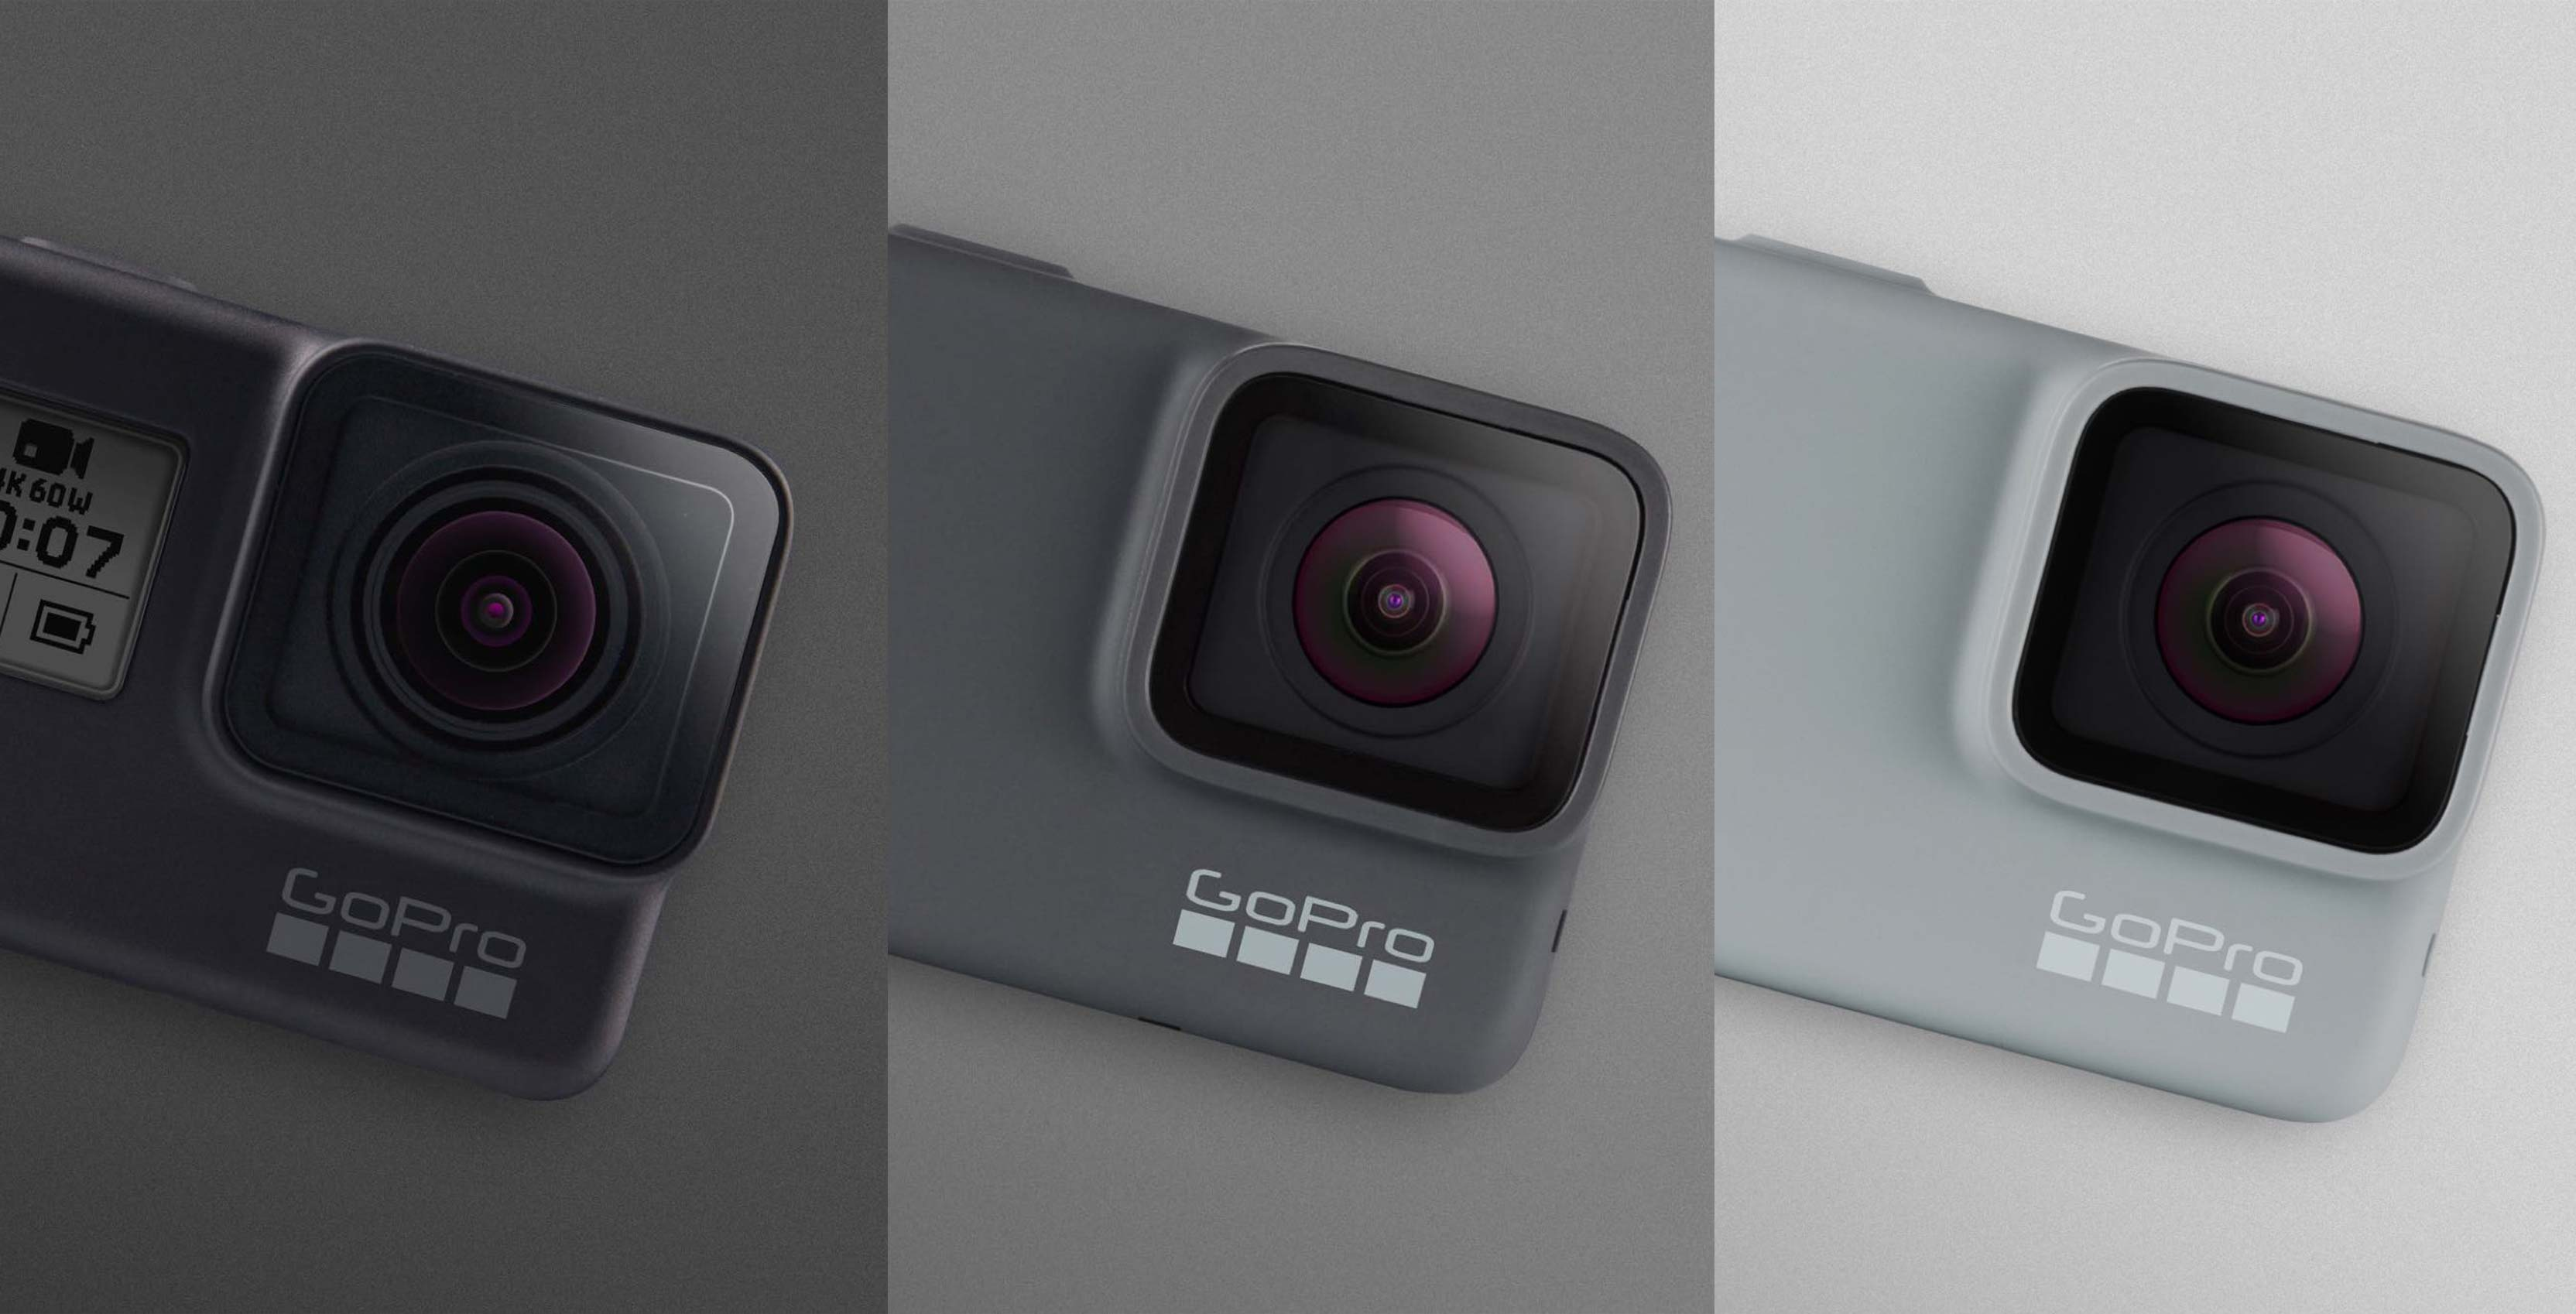 Here S How Much Gopro S New Hero 7 Action Cameras Cost In Canada